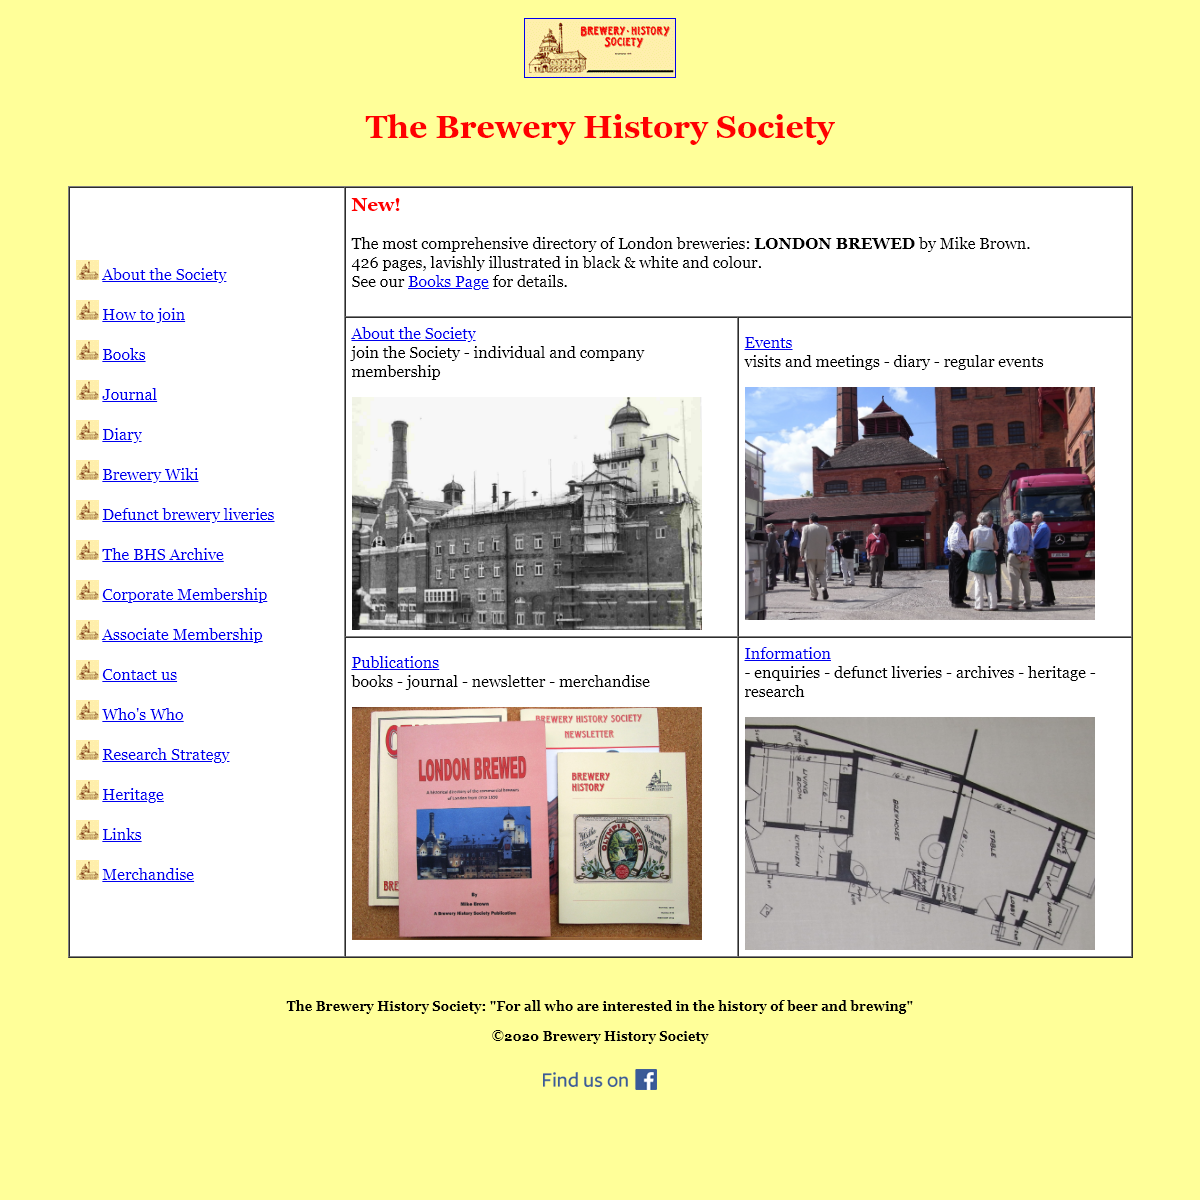 Brewery History Society- The Society for all who are interested in the history of beer and brewing